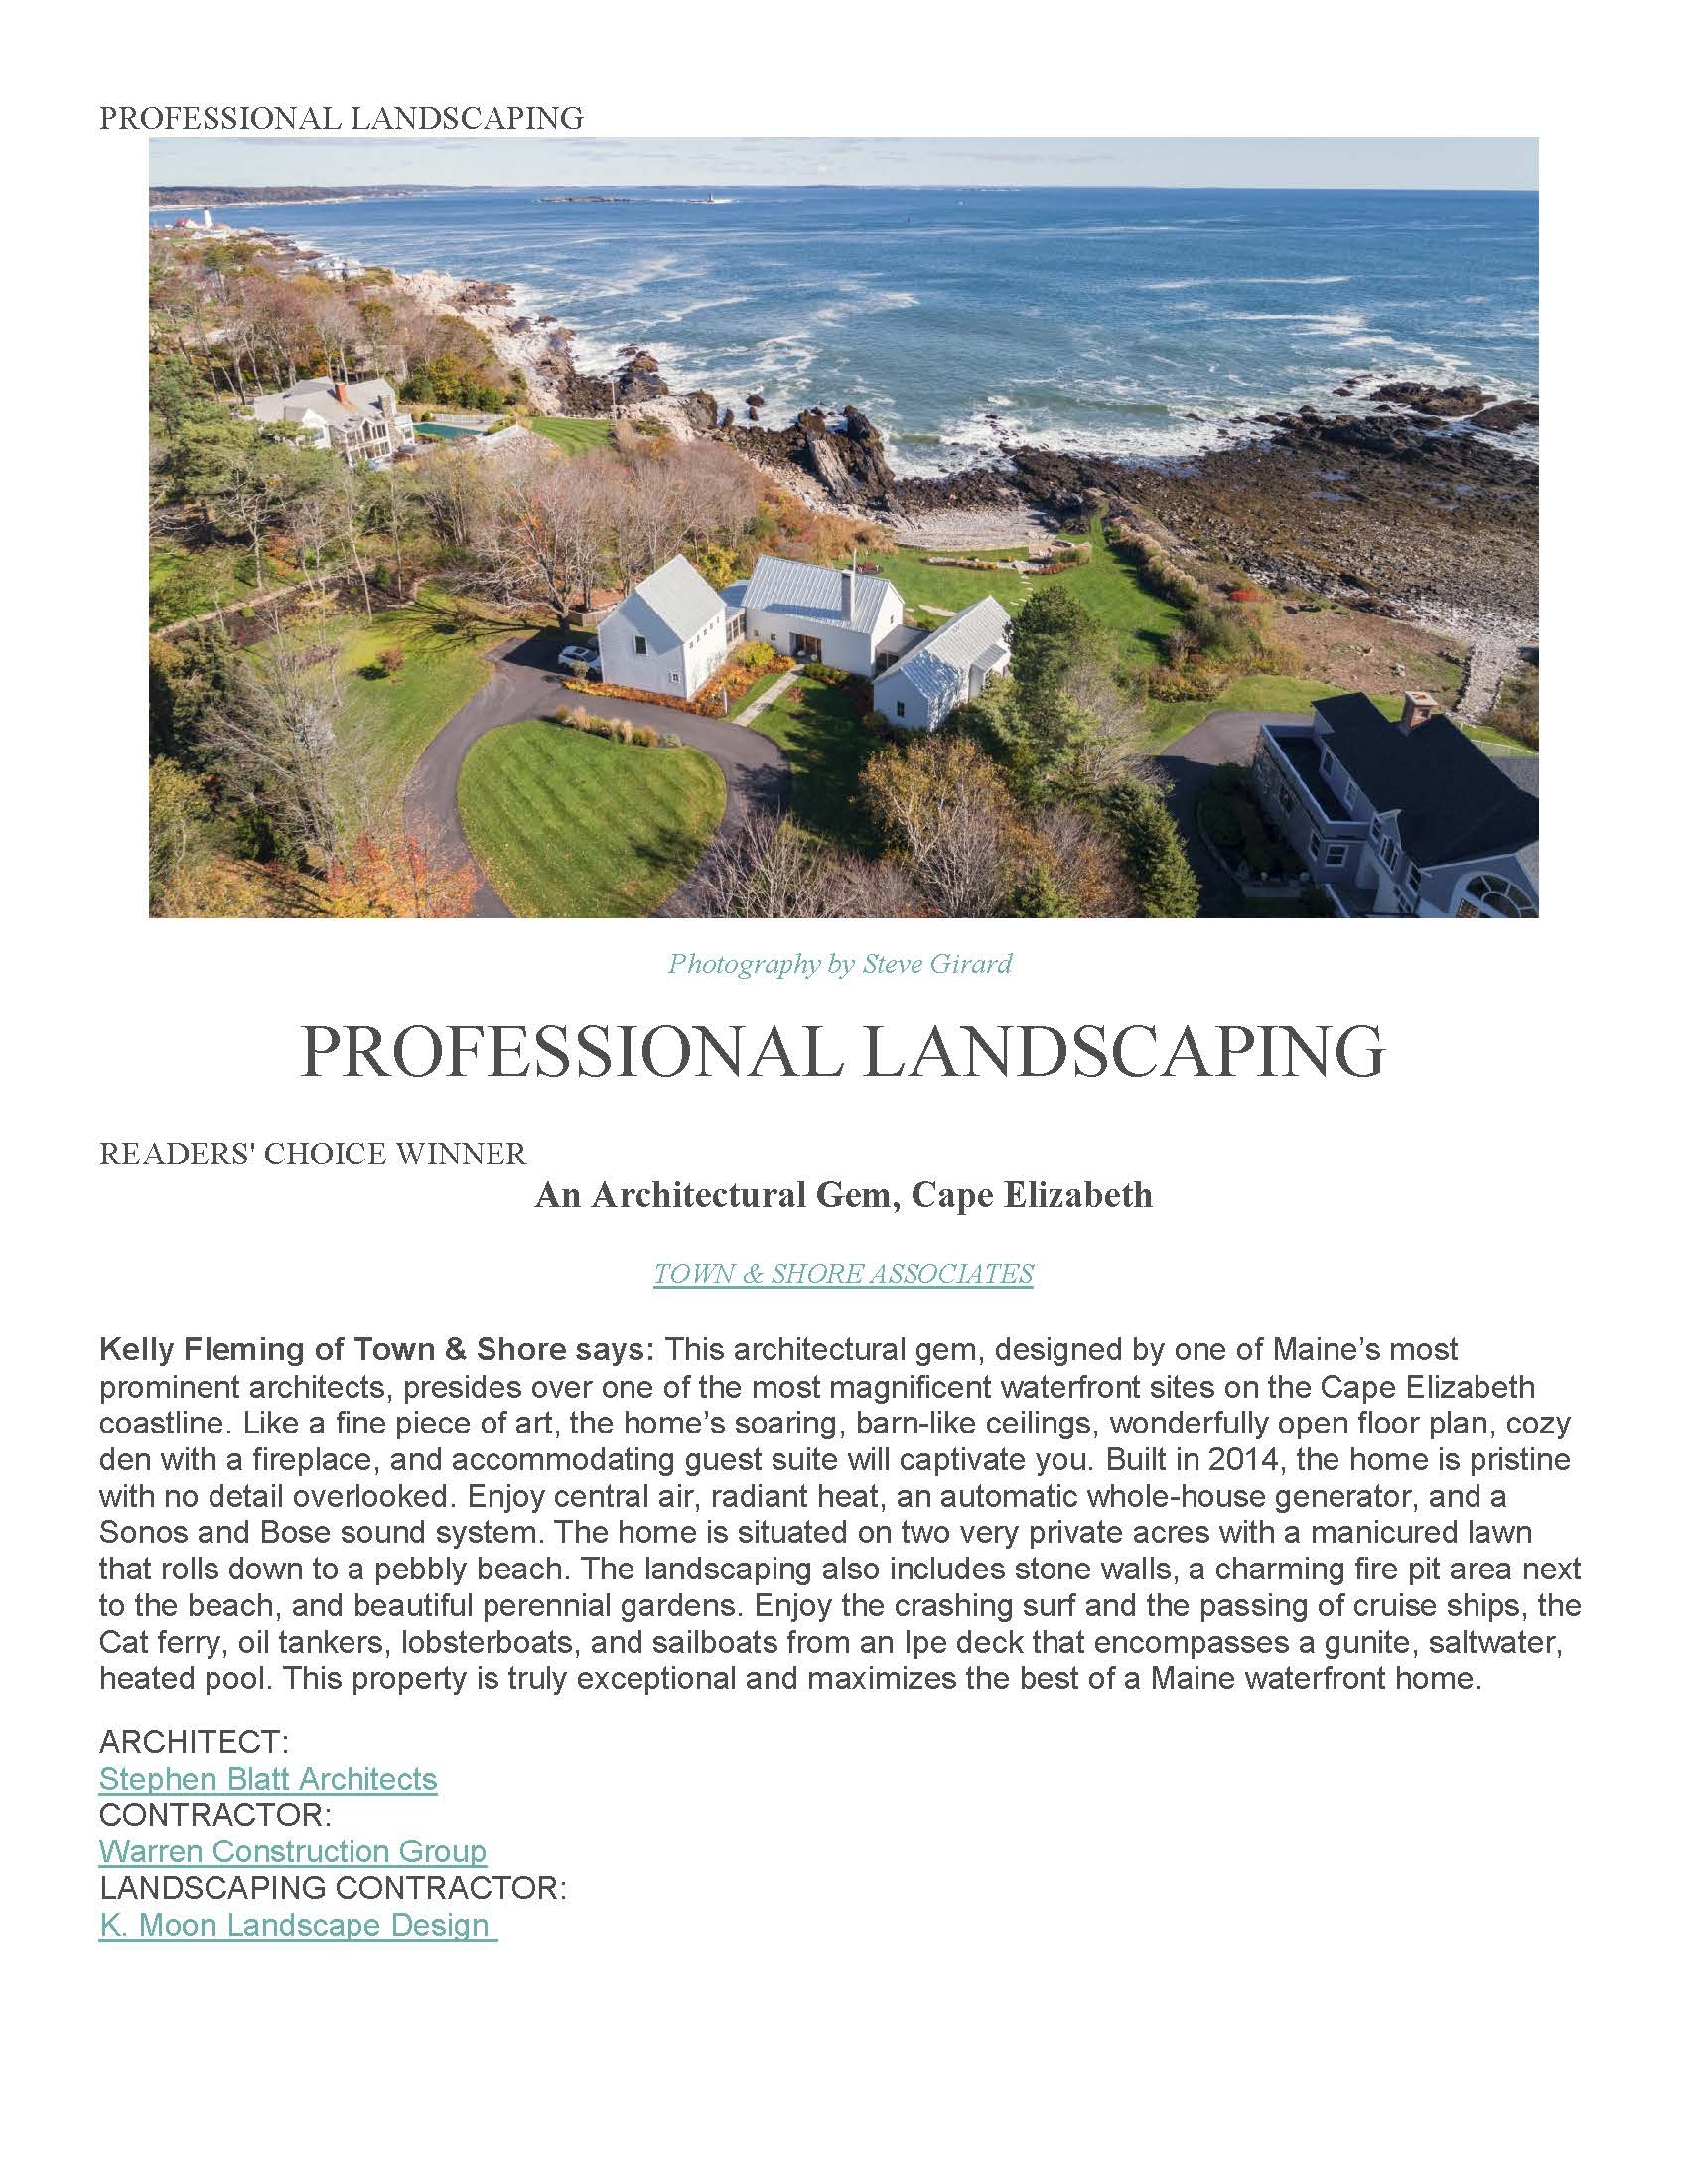 Cape Elizabeth house readers choice professional landscaping award